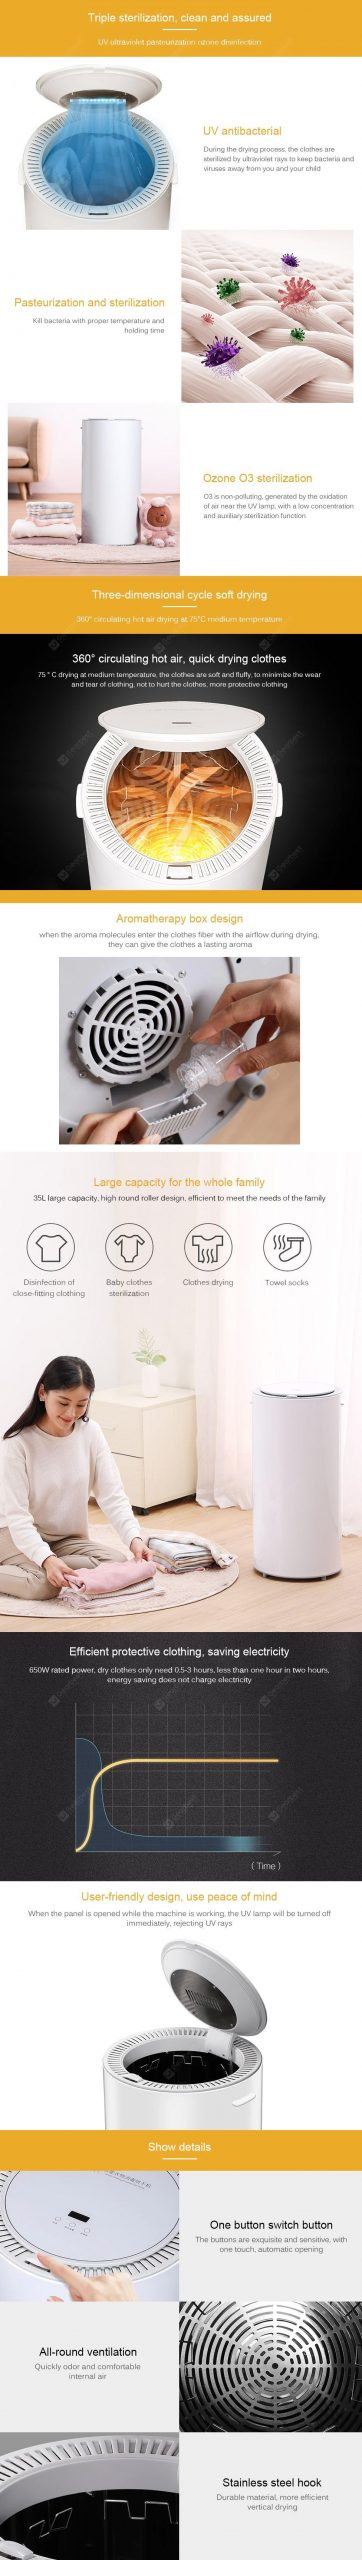 Mi Xiaolang Smart Clothing Disinfection Dryer 14L